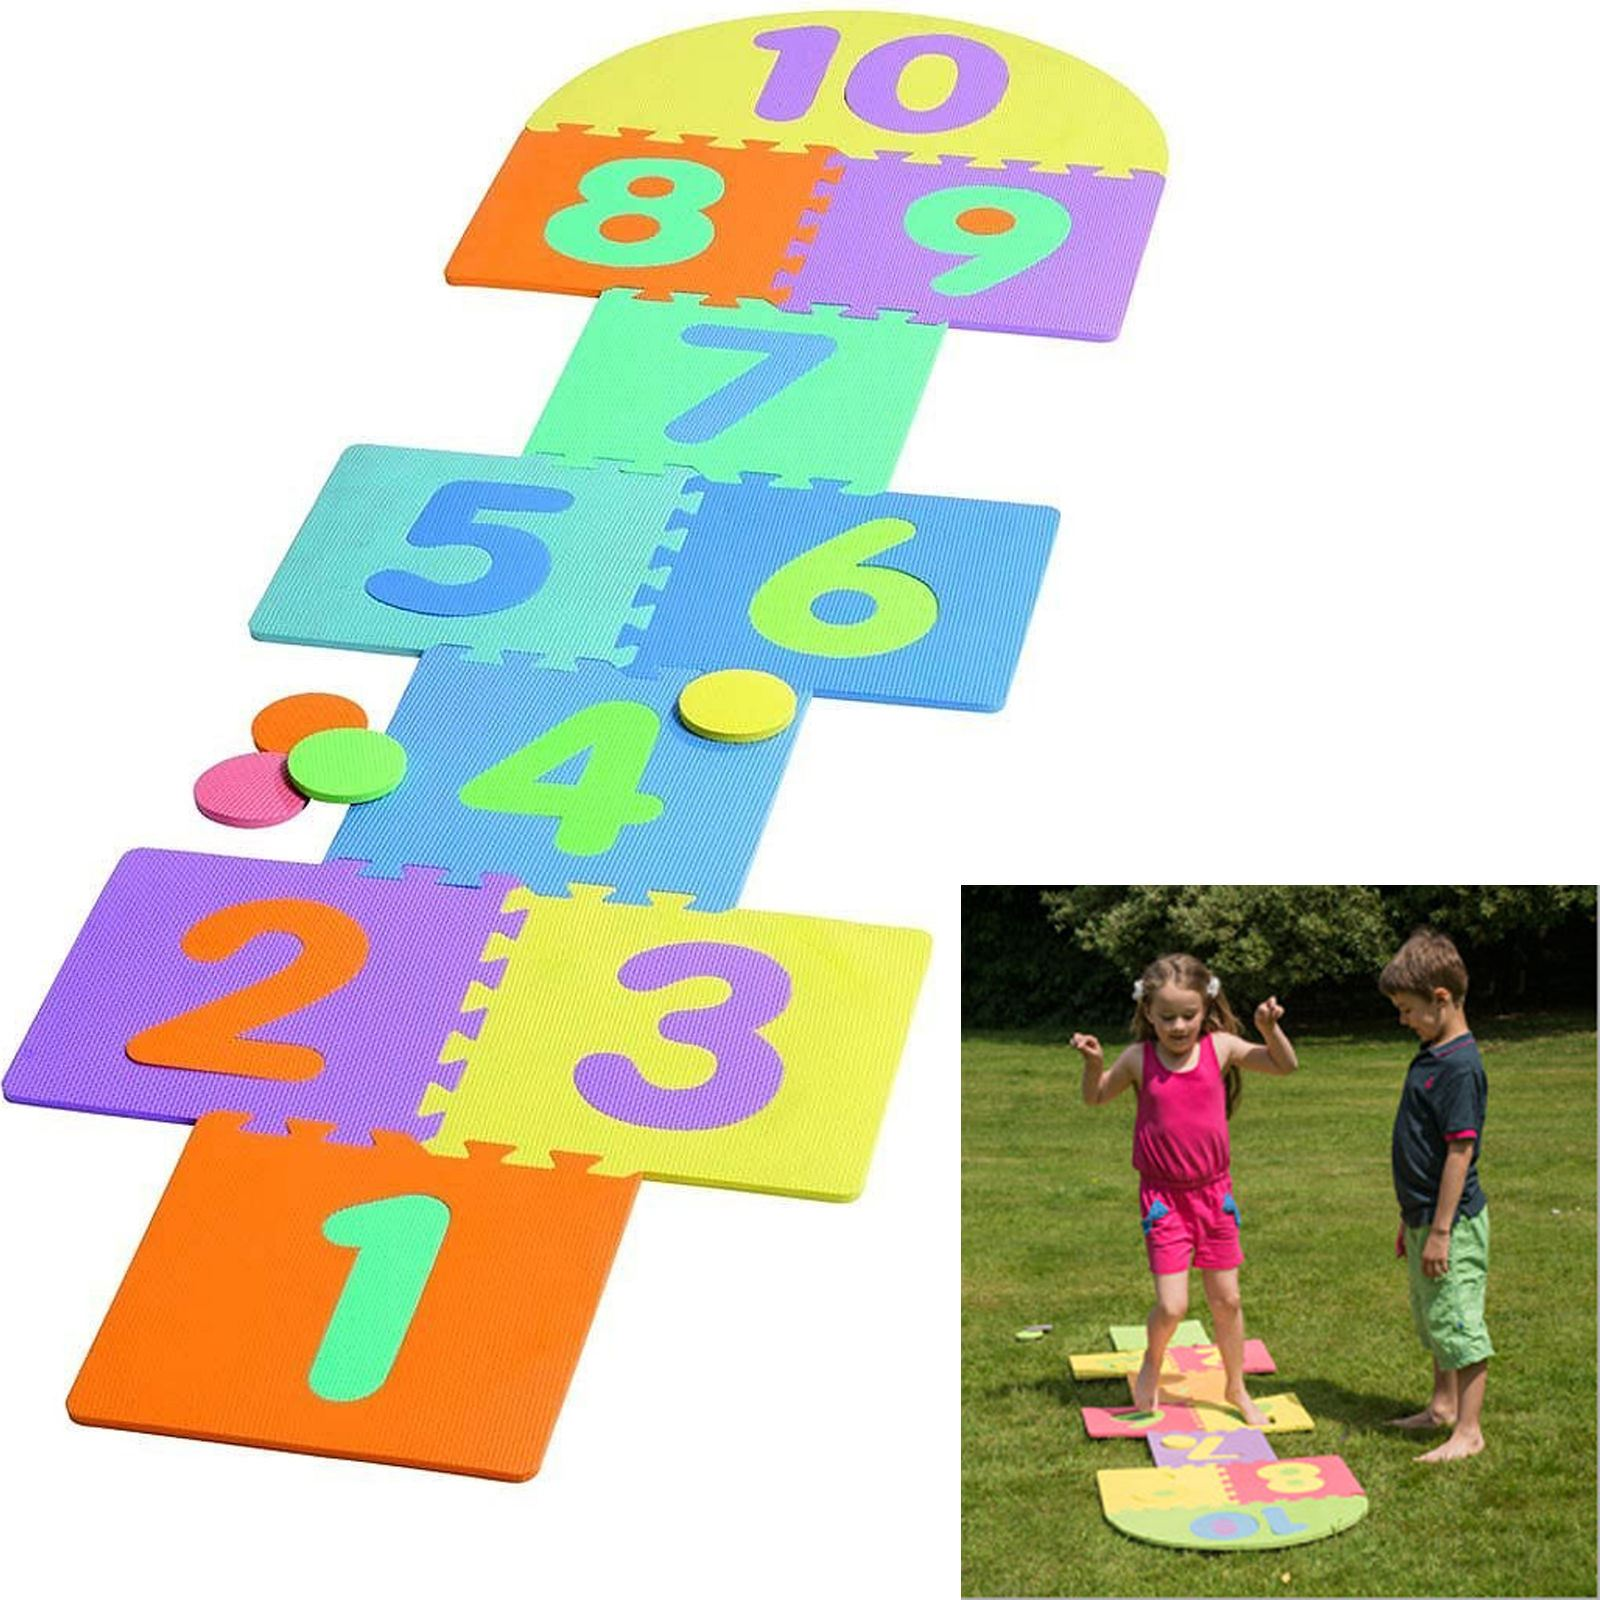 LARGE FAMILY OUTDOOR PARTY GAMES SUMMER BEACH BBQ PARTY